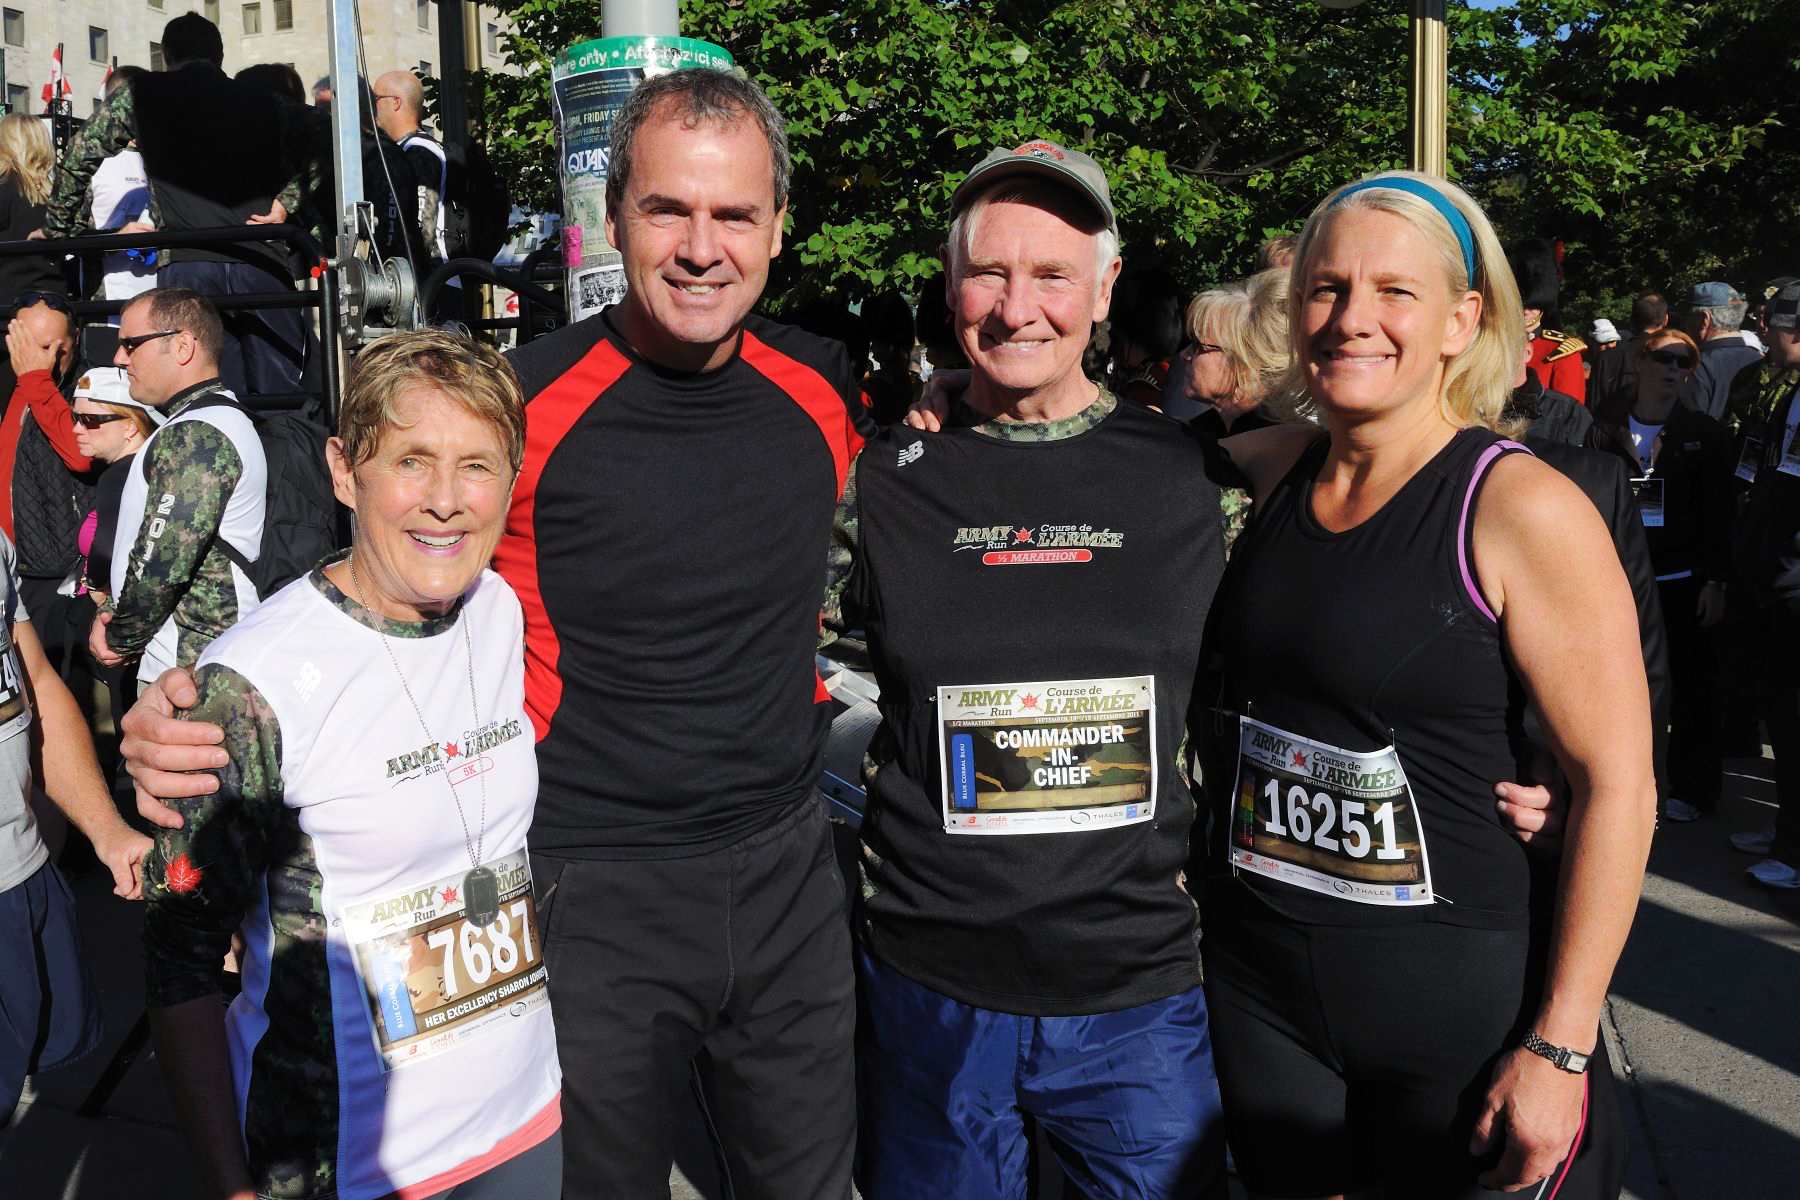 Before competing in his 21-kilometre race, His Excellency was joined by his wife (left), the Secretary to the Governor General Mr. Stephen Wallace and his daughter Debbie Johnston (right).